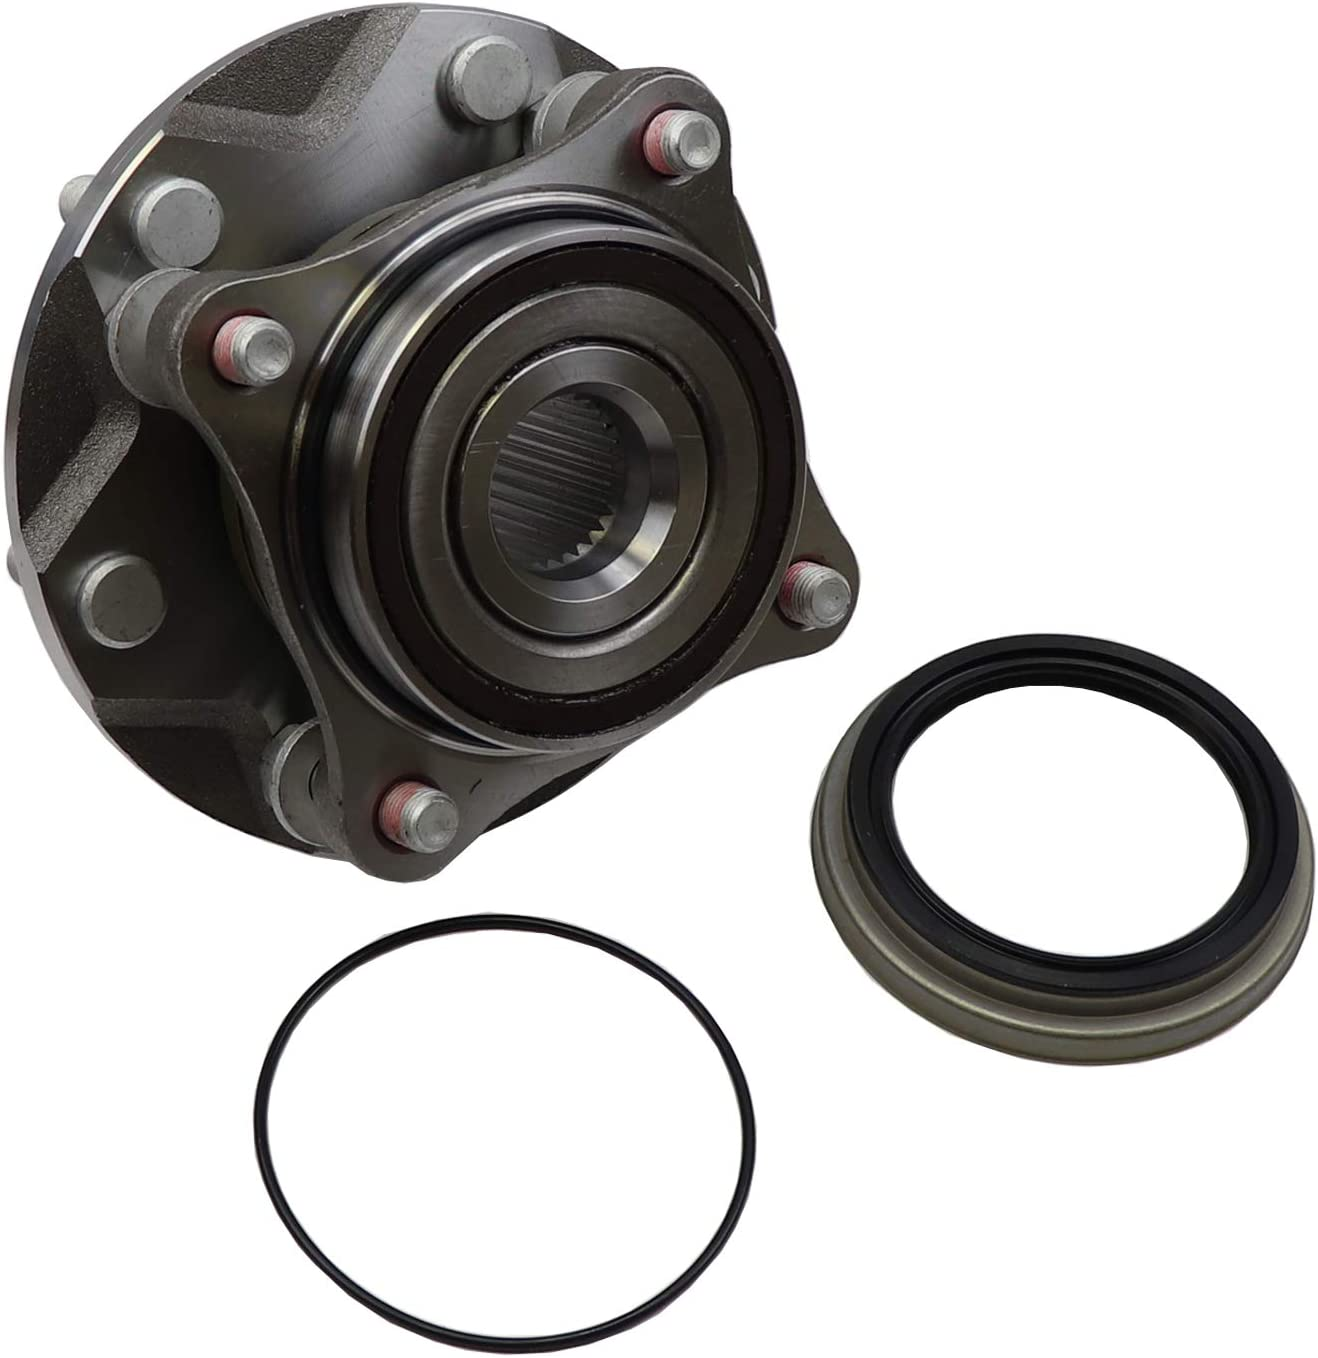 BECKARNLEY 051-6470 Hub and Bearing Assembly 1 Pack